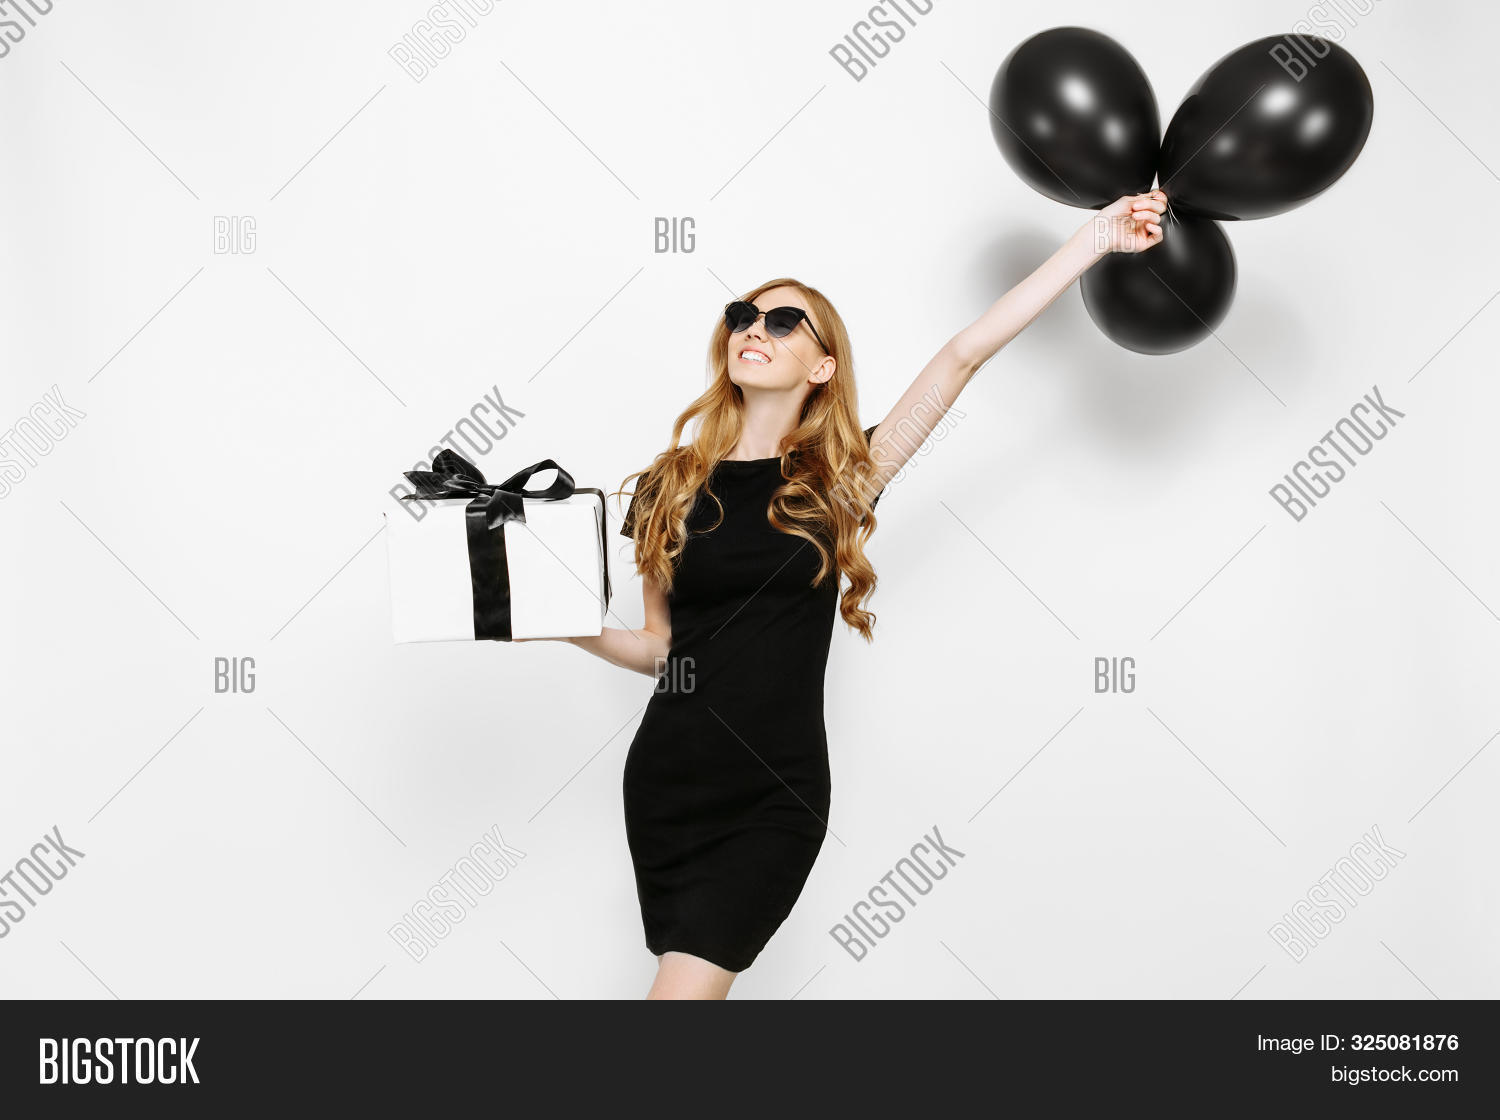 Beauty,Friday,Shopaholic,adult,attractive,background,beautiful,black,blonde,box,buyer,classic,consumer,copyspace,customer,cute,discounts,dress,elegance,elegant,excited,fashion,female,gift,girl,happy,holding,inquiry,isolated,lady,lifestyle,luxury,model,person,portrait,purchase,sale,shocked,shopping,style,surprise,trade,white,woman,women,young